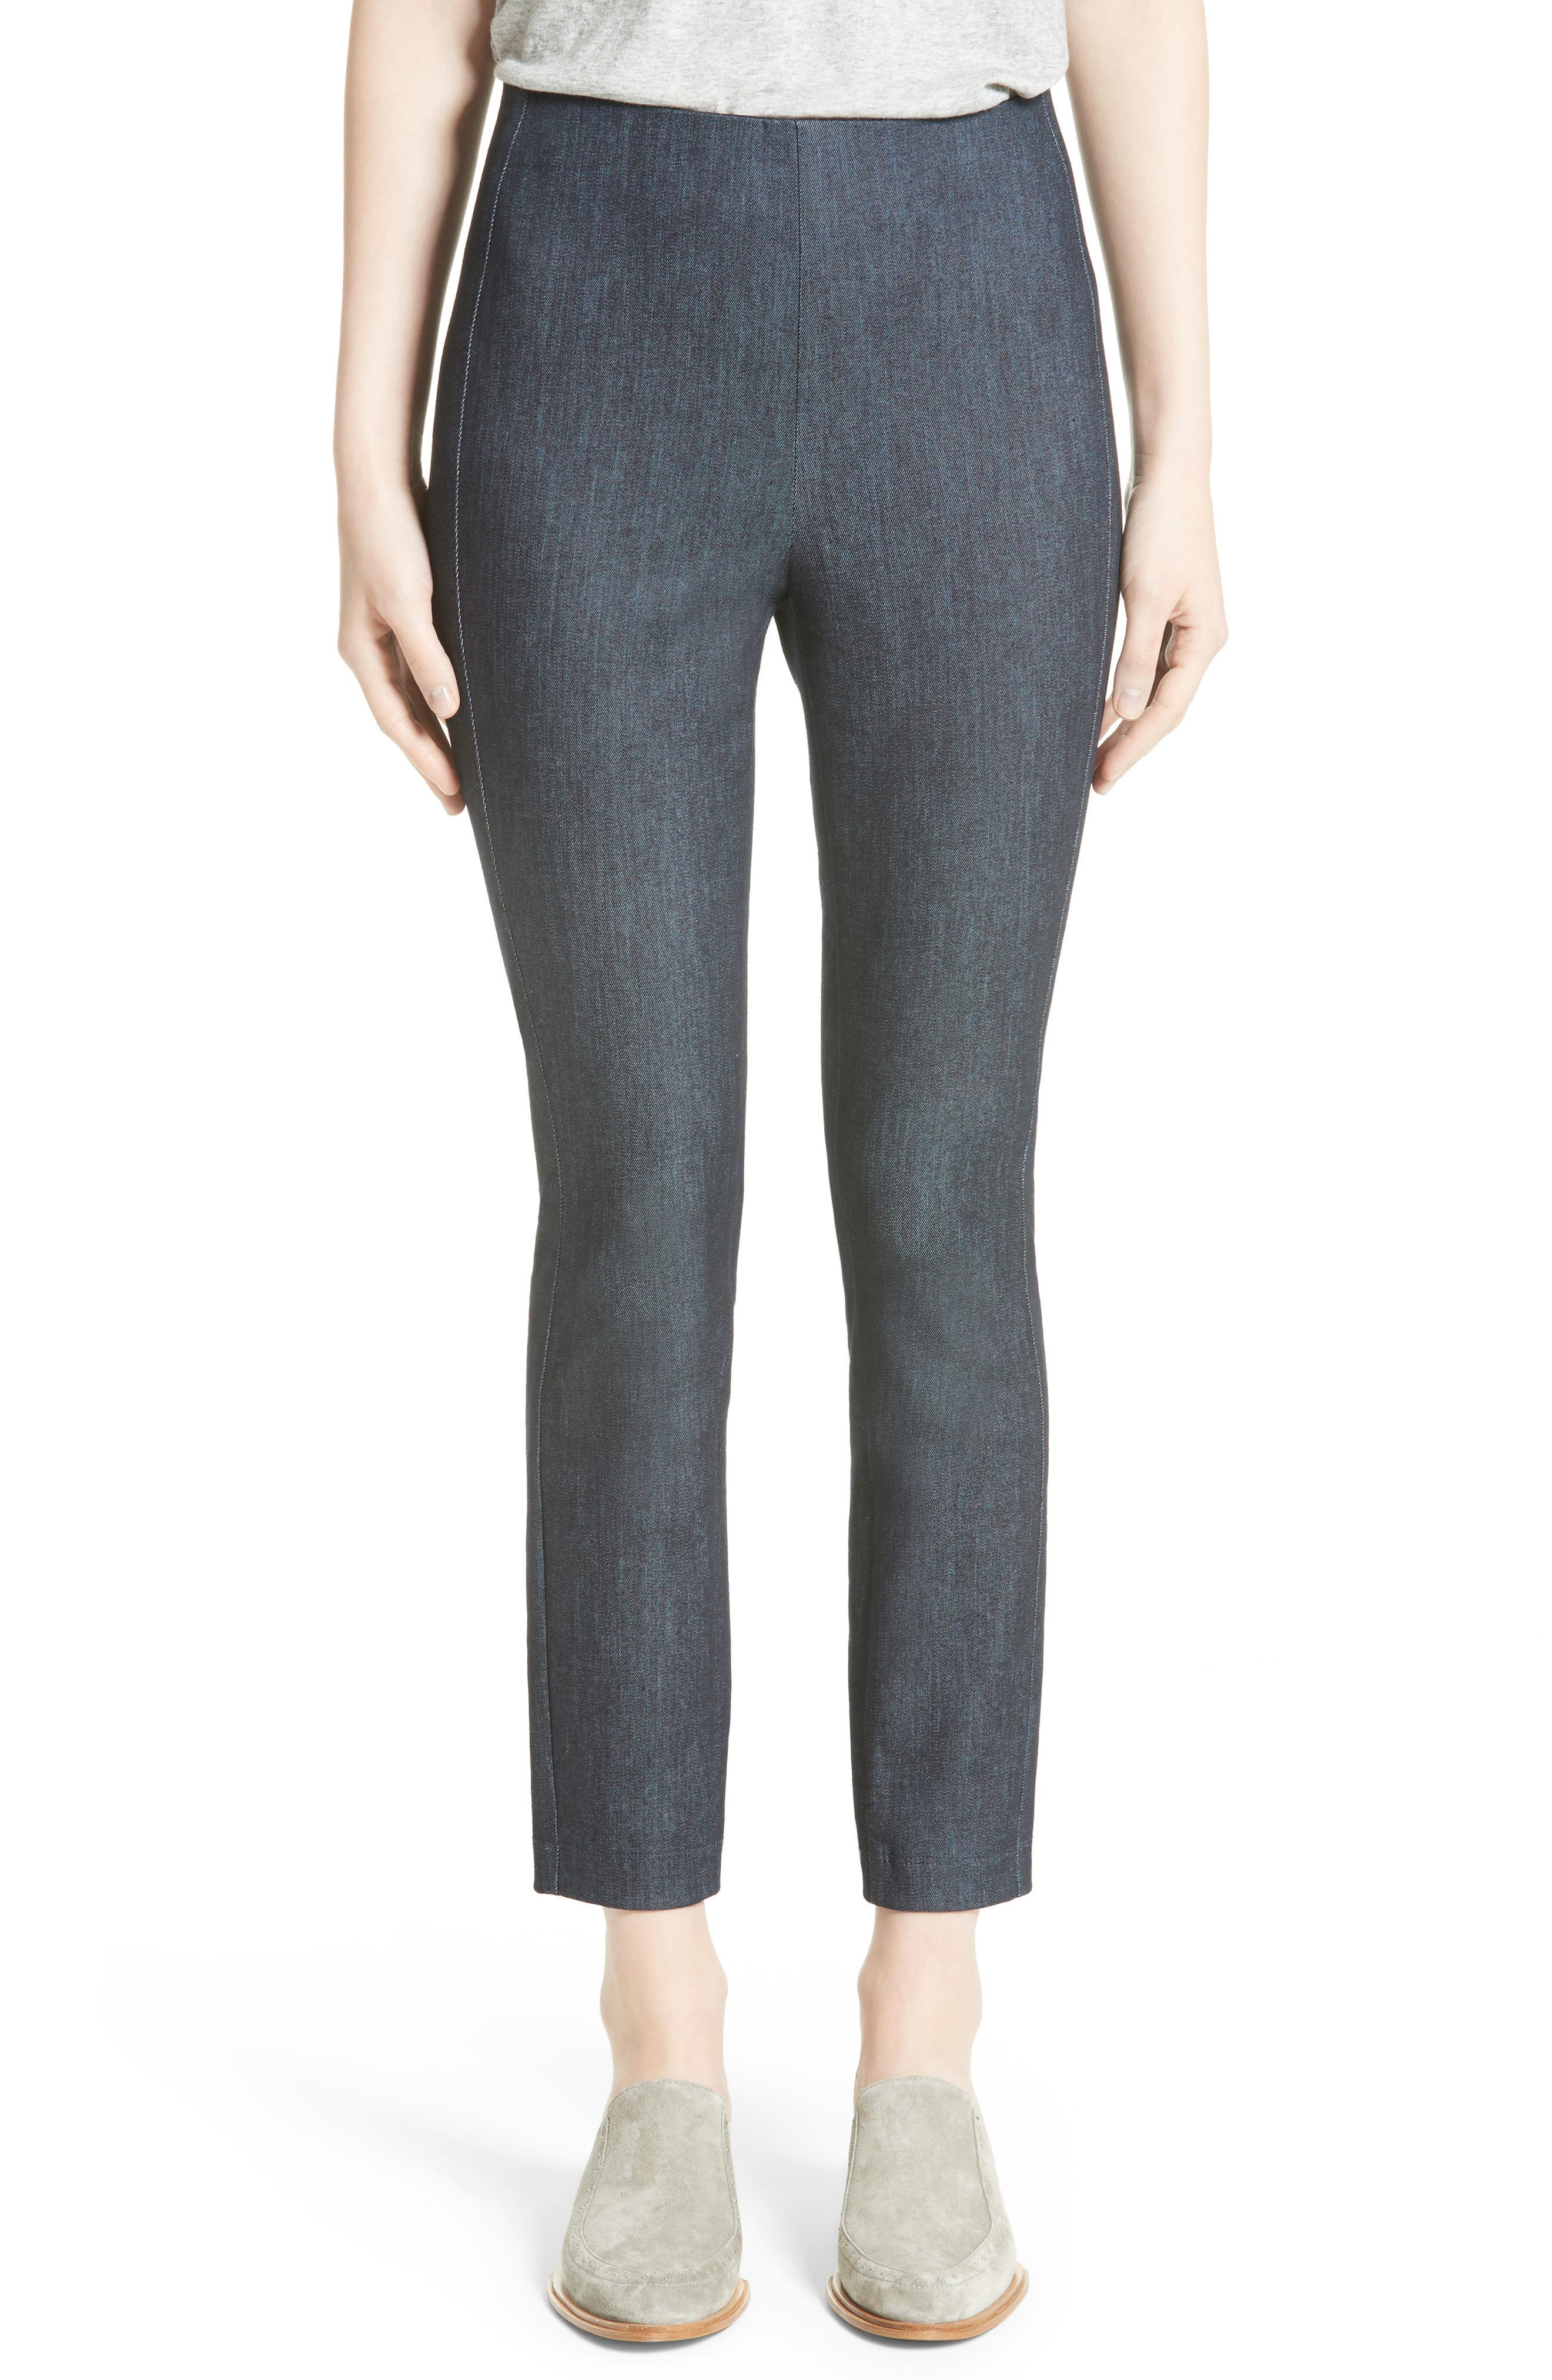 RAG & BONE, Simone Slim Ankle Pants, Main thumbnail 1, color, INDIGO